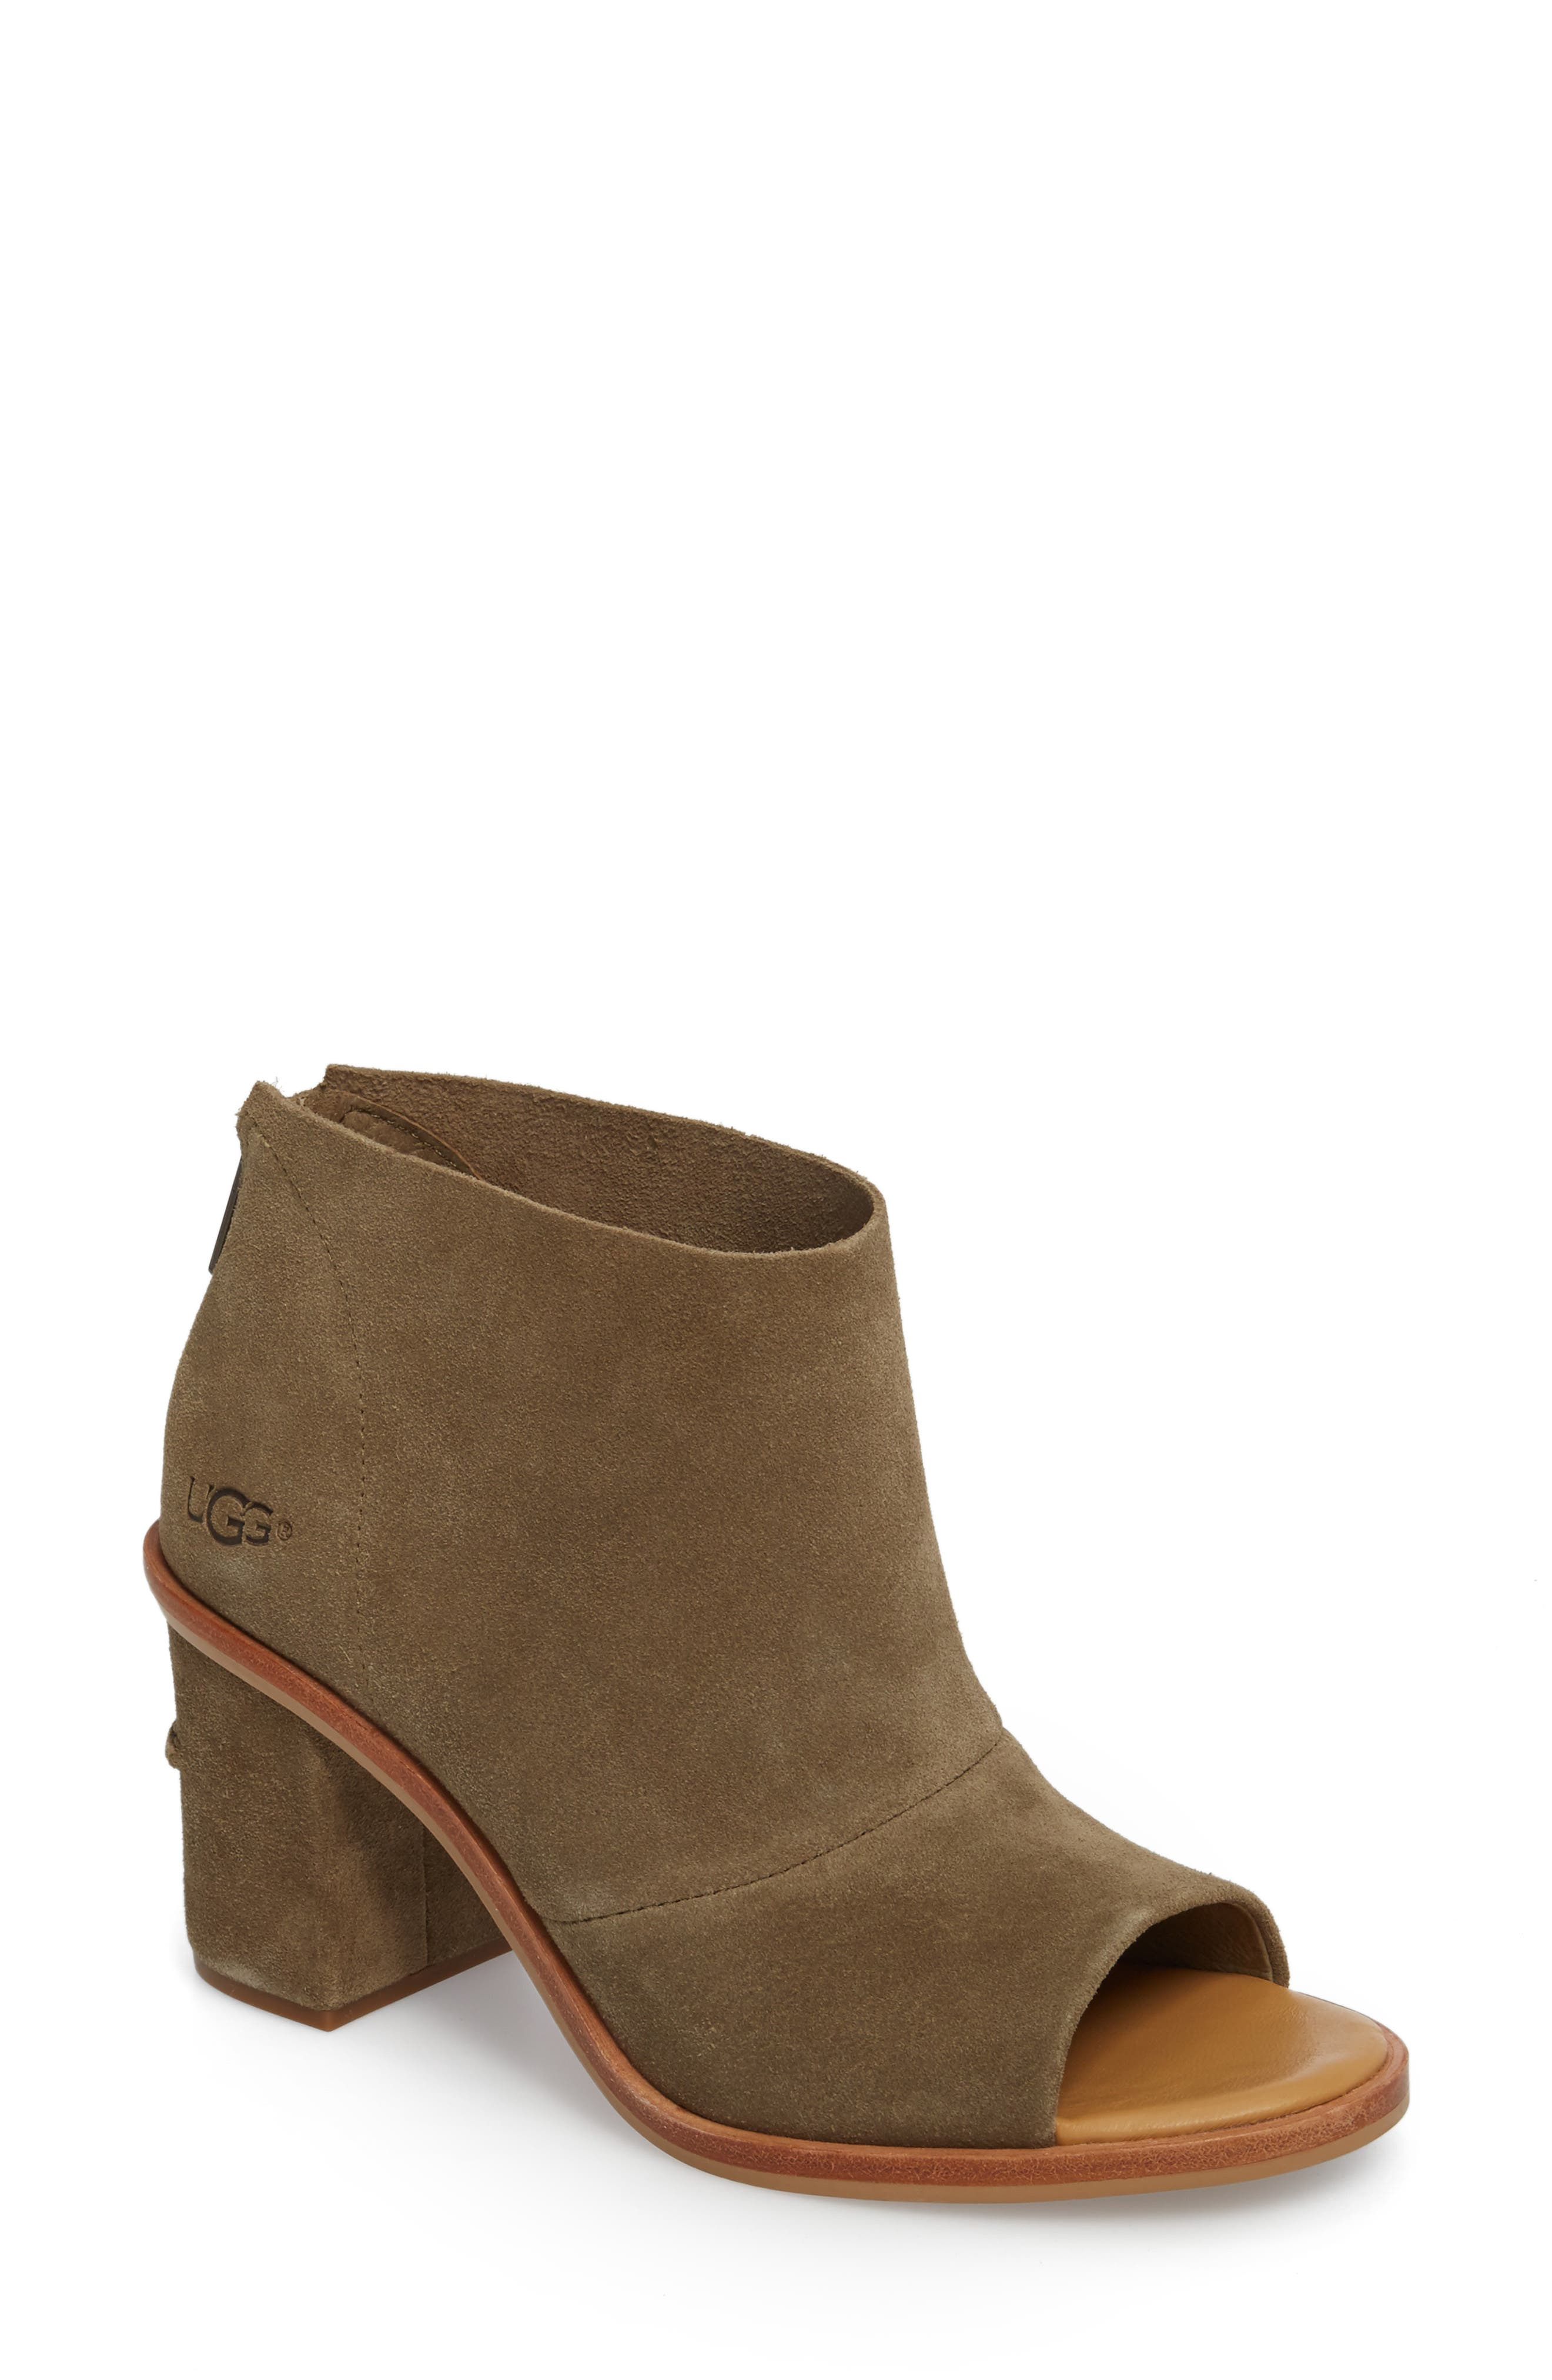 Ginger Peep Toe Bootie,                         Main,                         color, Apple Green Suede